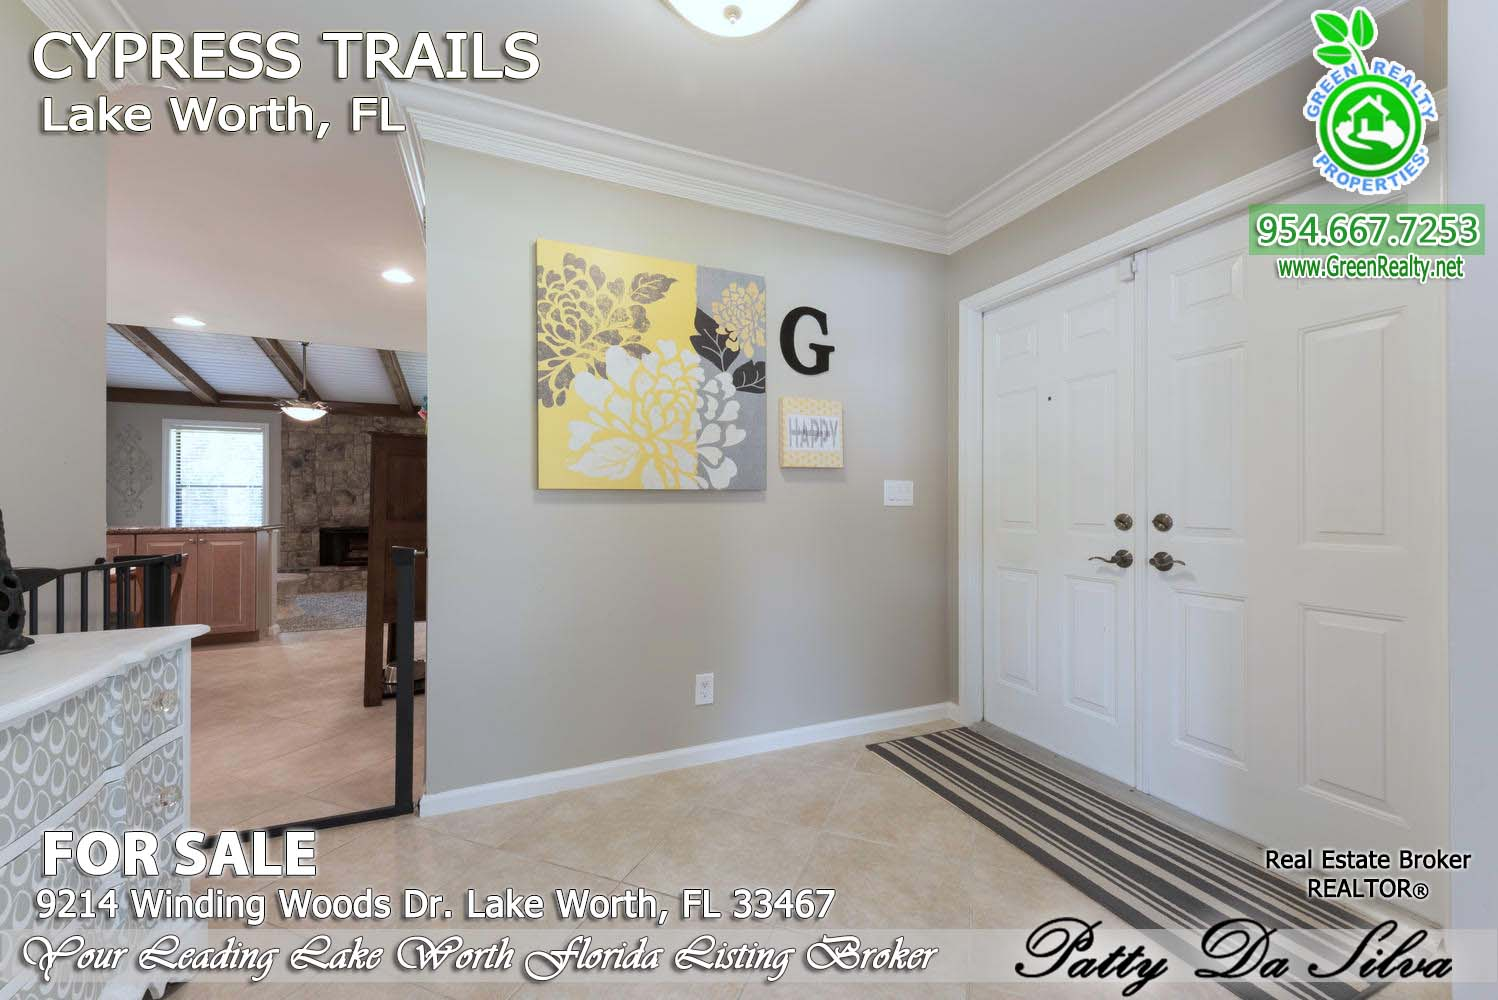 9214 Winding Woods Dr Lake - Home Photos (35)